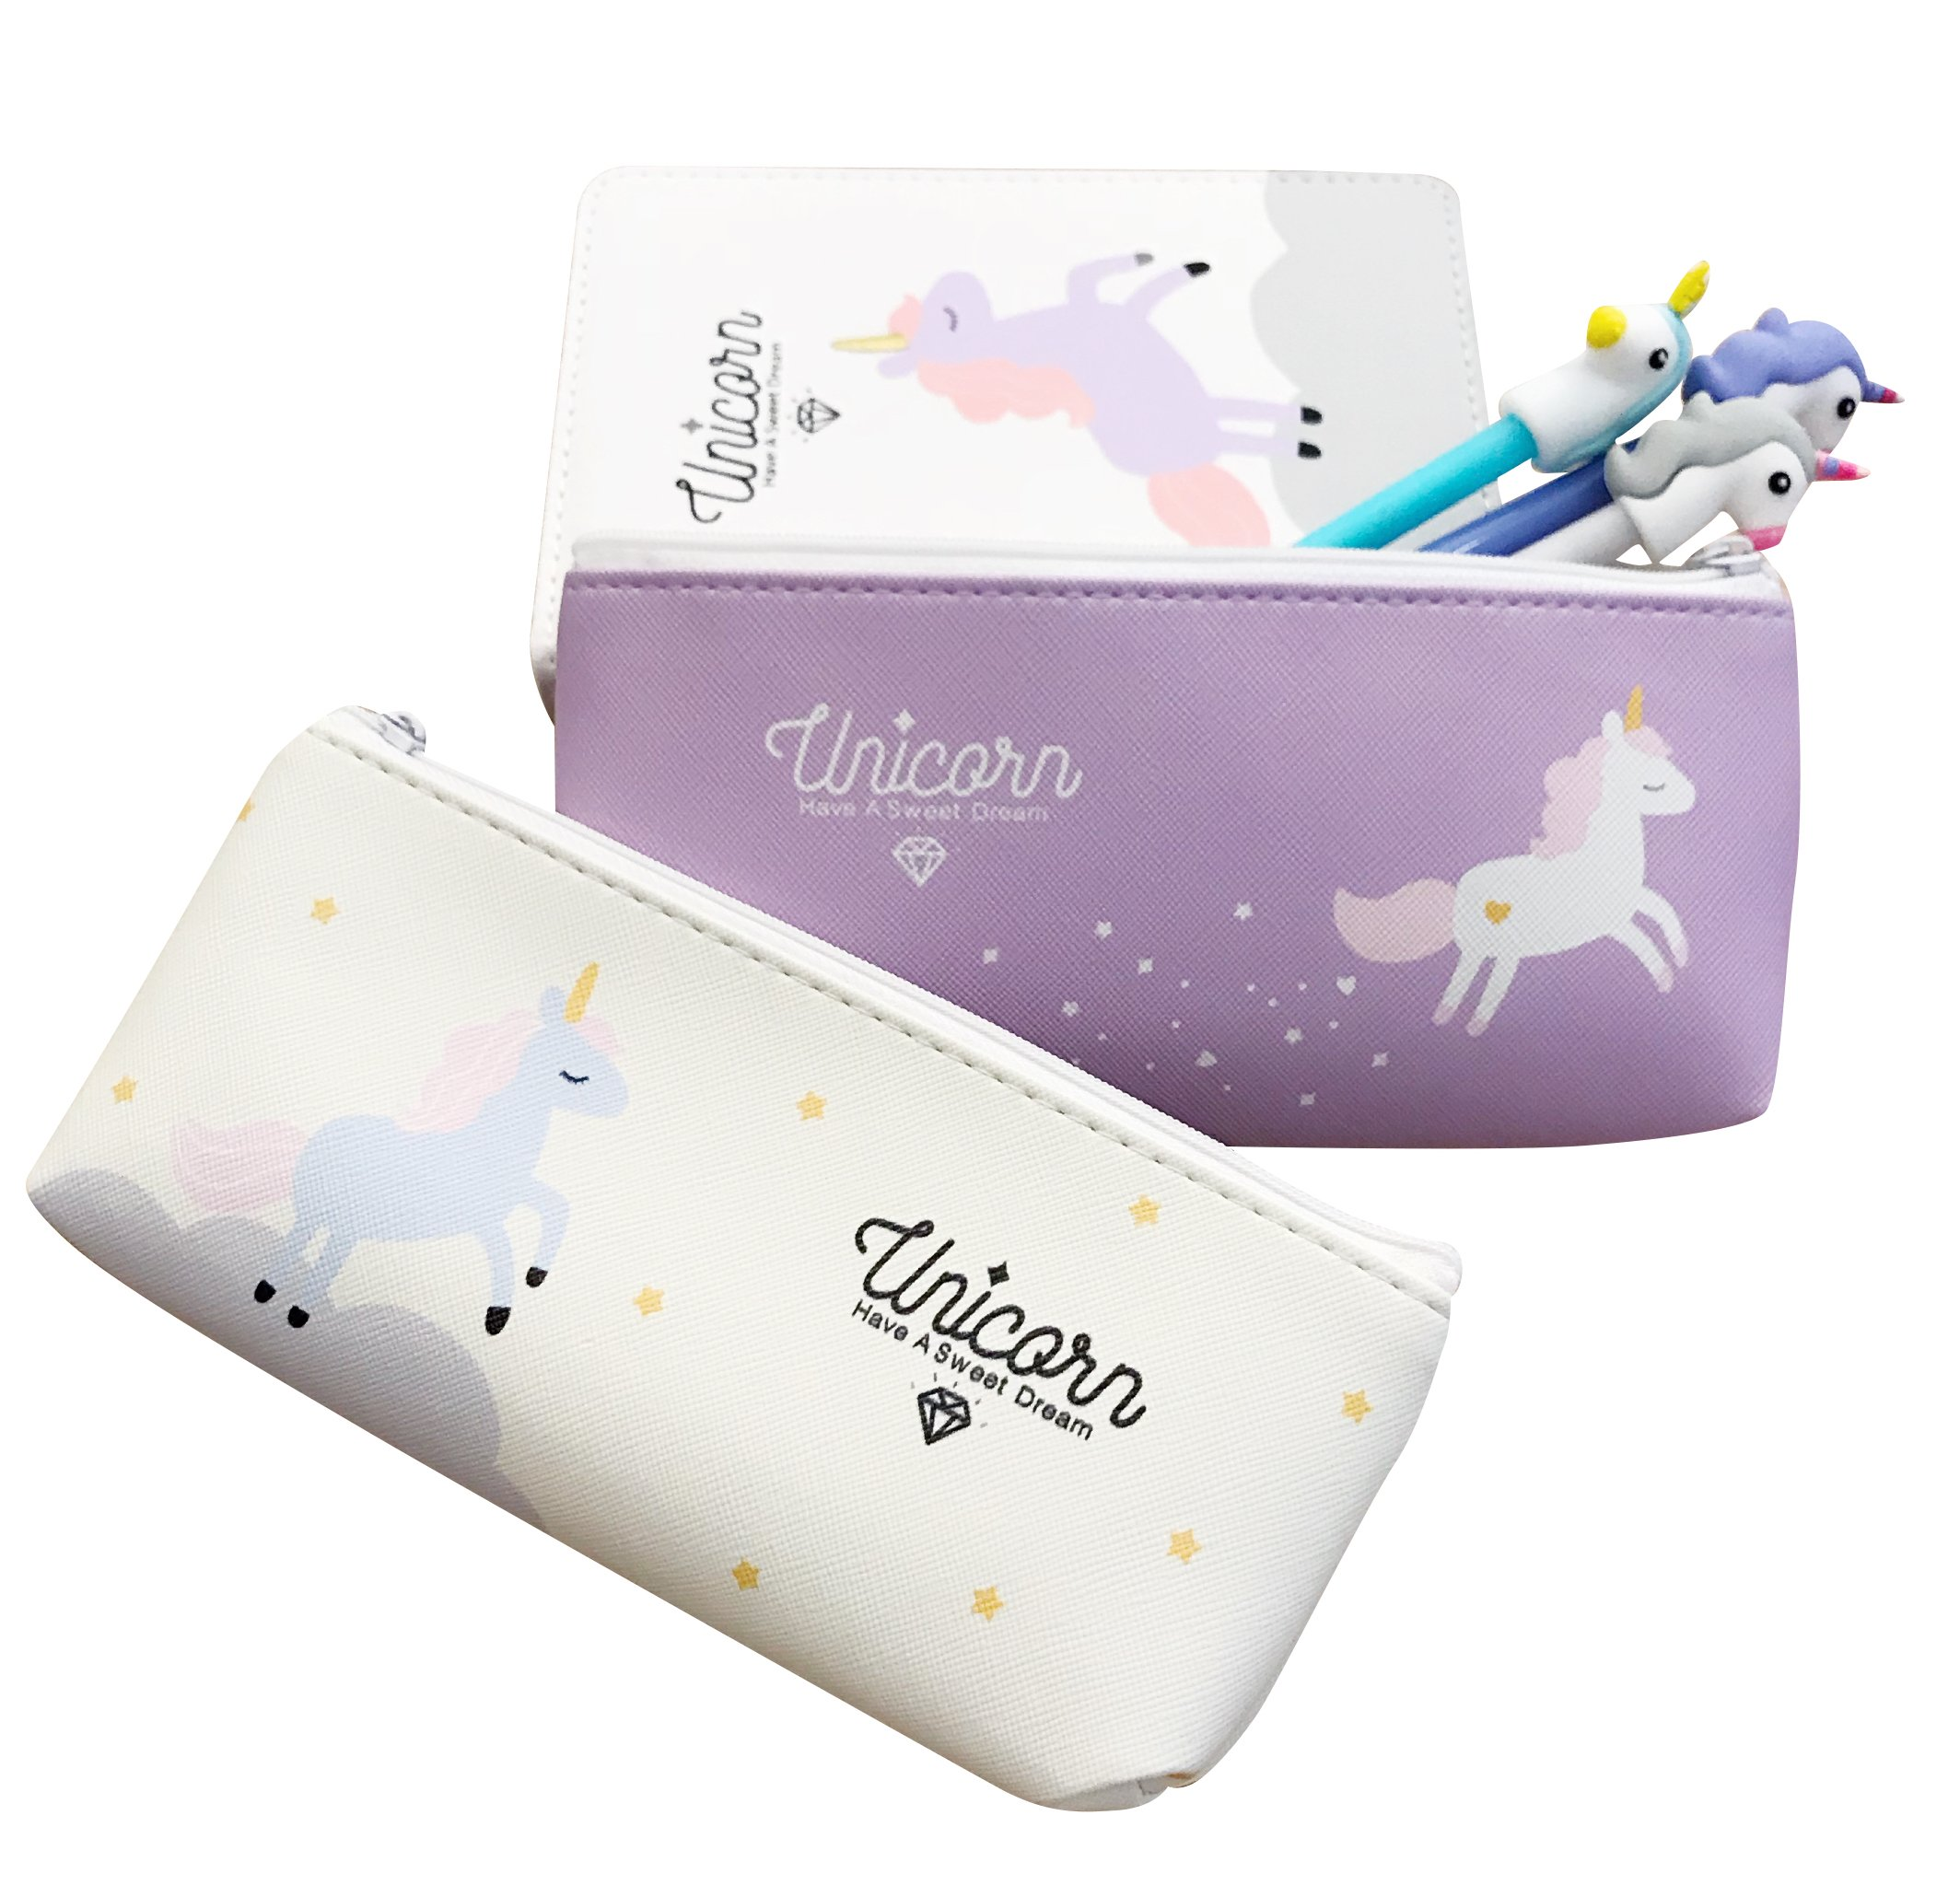 BelleWithLove BWL Assorted Unicorn School Supplies Stationary Pen Pencil Case Weekly Monthly Planner Calendar Notebook Diary Journal Unicorn Gift Set - Students Girls Teens Kids